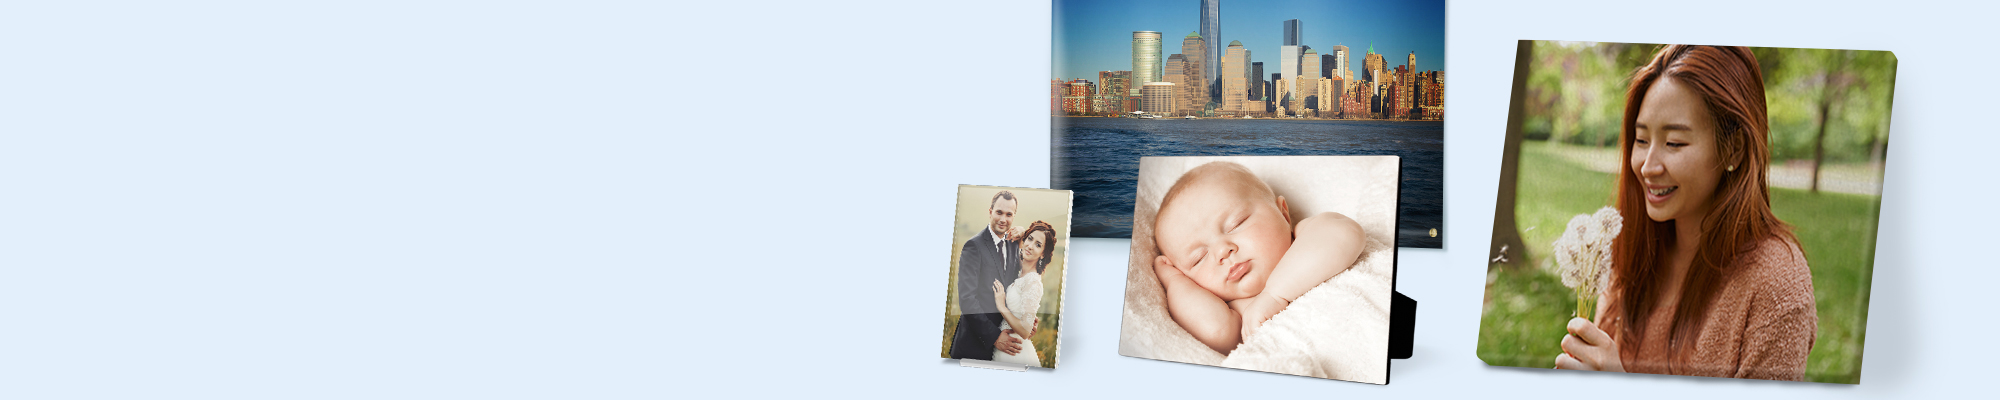 Wall Art & Canvas Turn your photographs into something truly special to display in your home. Choose from a great range of Wall Art products including Canvas, Acrylics, Posters and Panels.